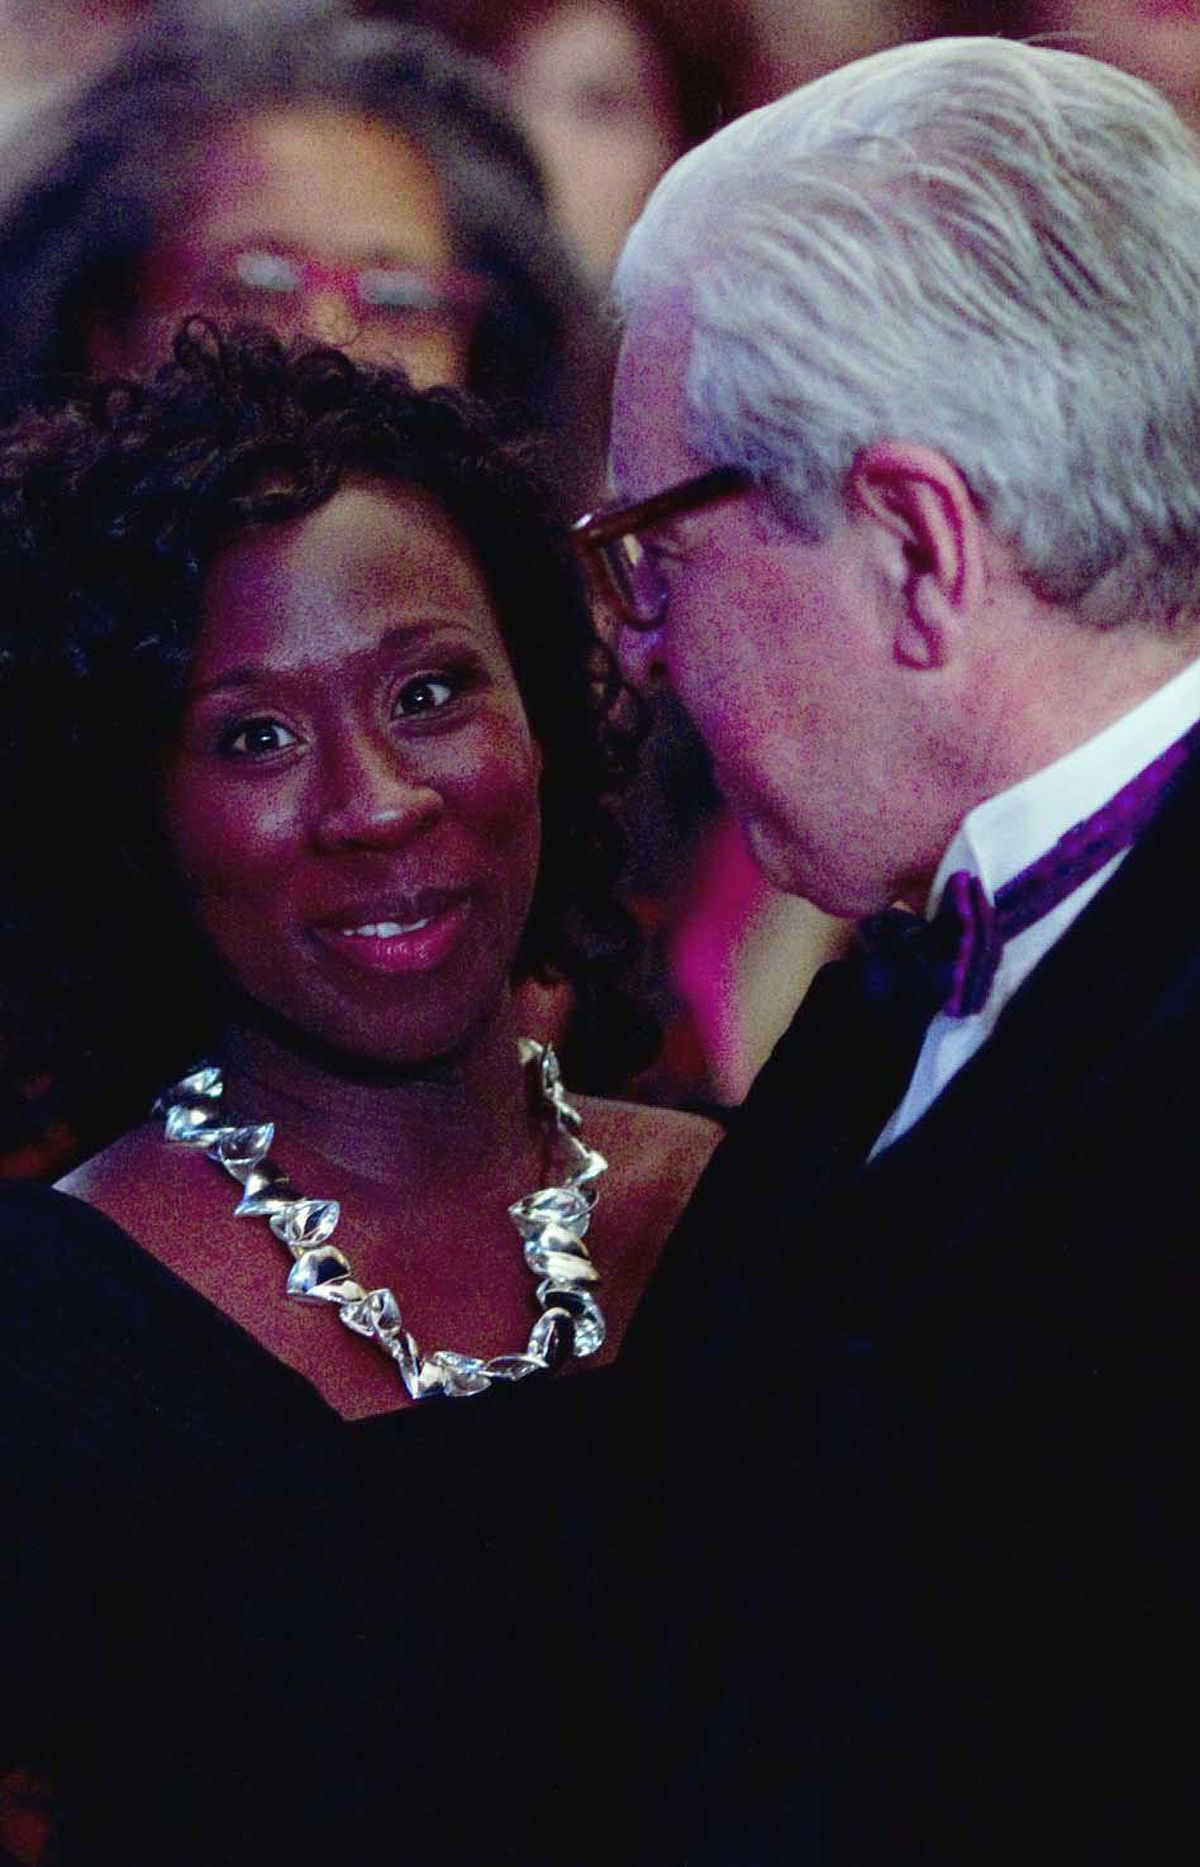 """Esi Edugyan is congratulated by her publisher, Patrick Crean of Thomas Allen, as she makes her way to the podium to accept the Giller Prize. Crean rescued """"Half-Blood-Blues"""" from obscurity after Edugyan's original publisher, Key Porter, went bankrupt."""